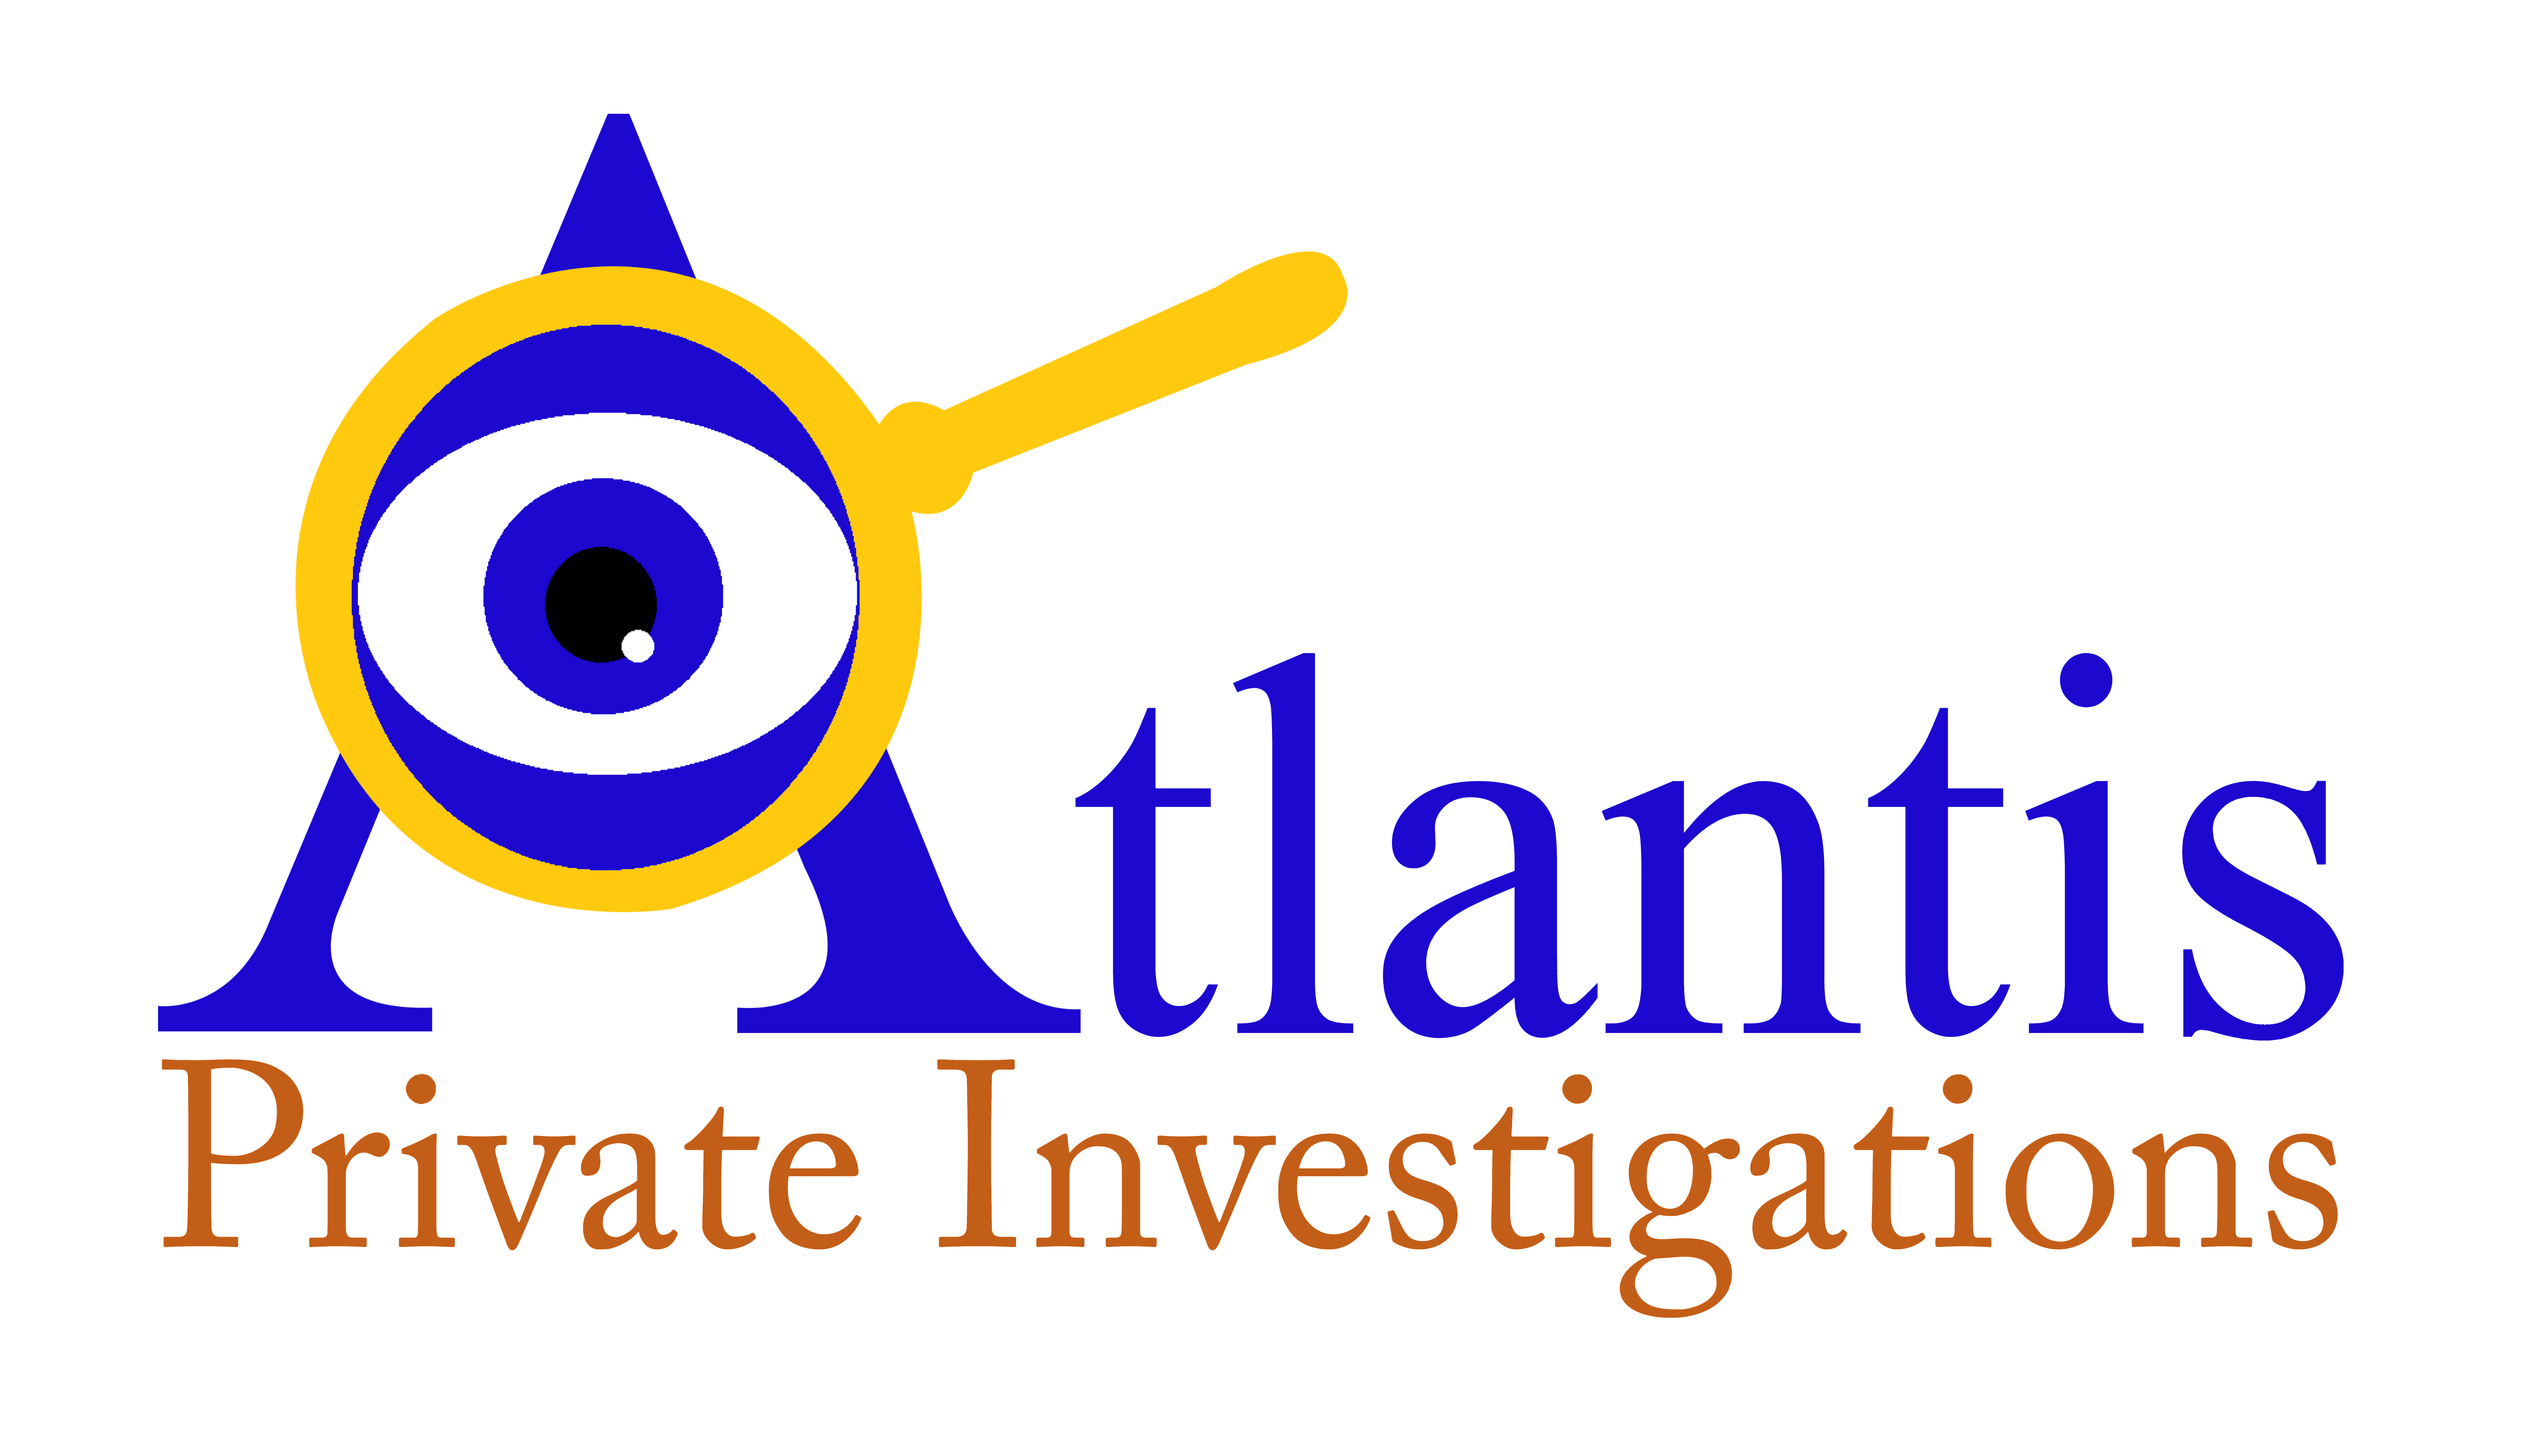 Atlantis Private Investigations, LLC